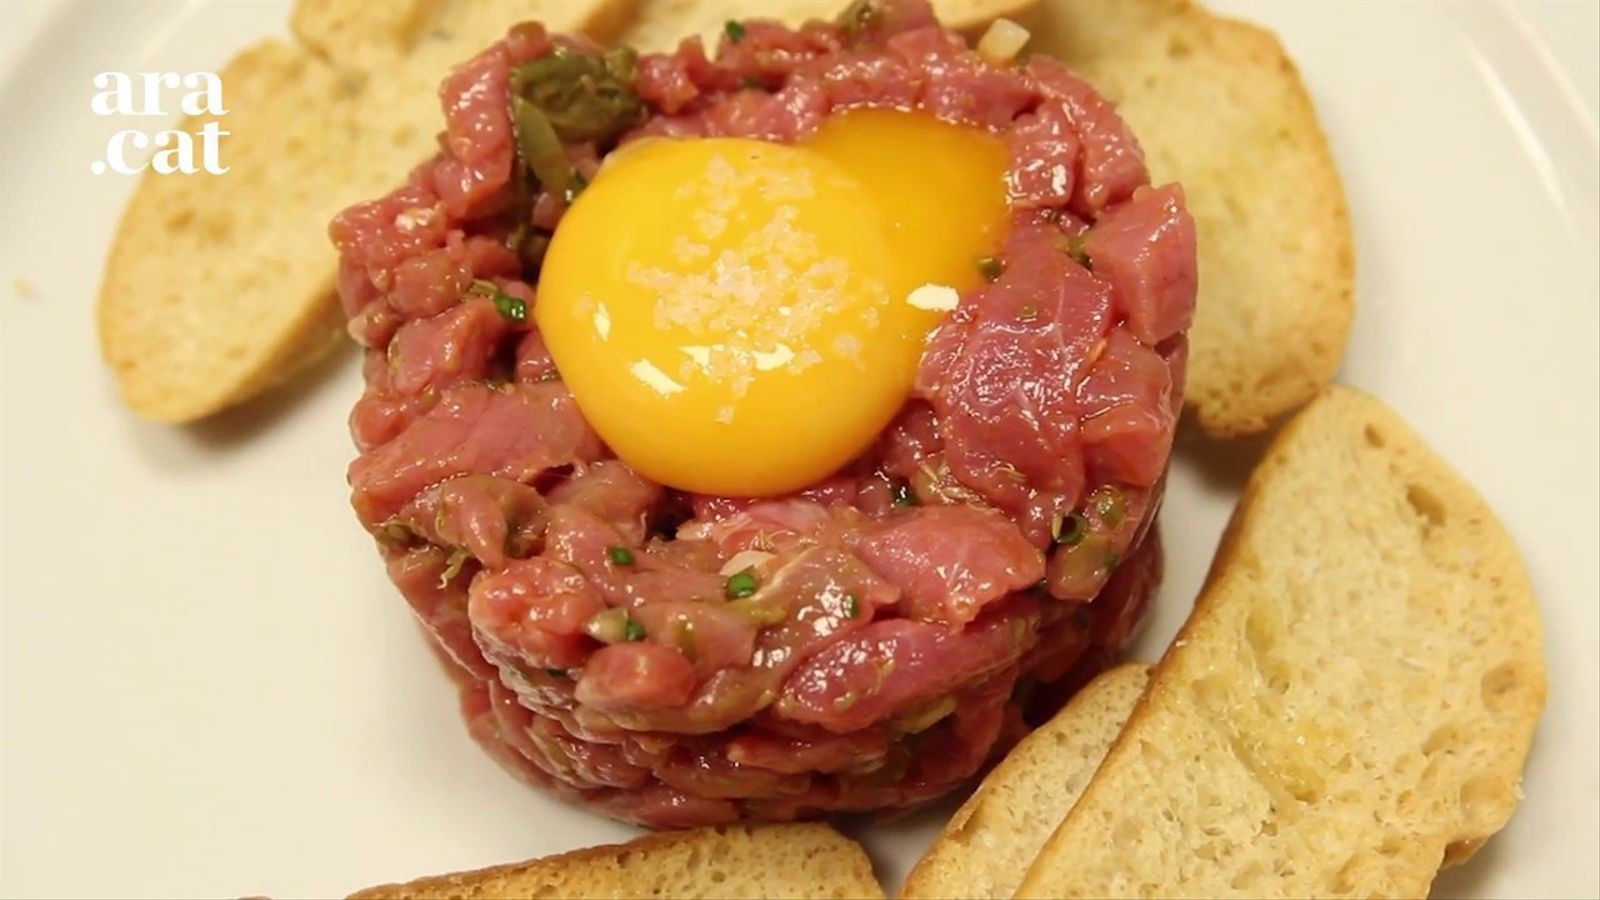 Steak tartar del Filete Ruso